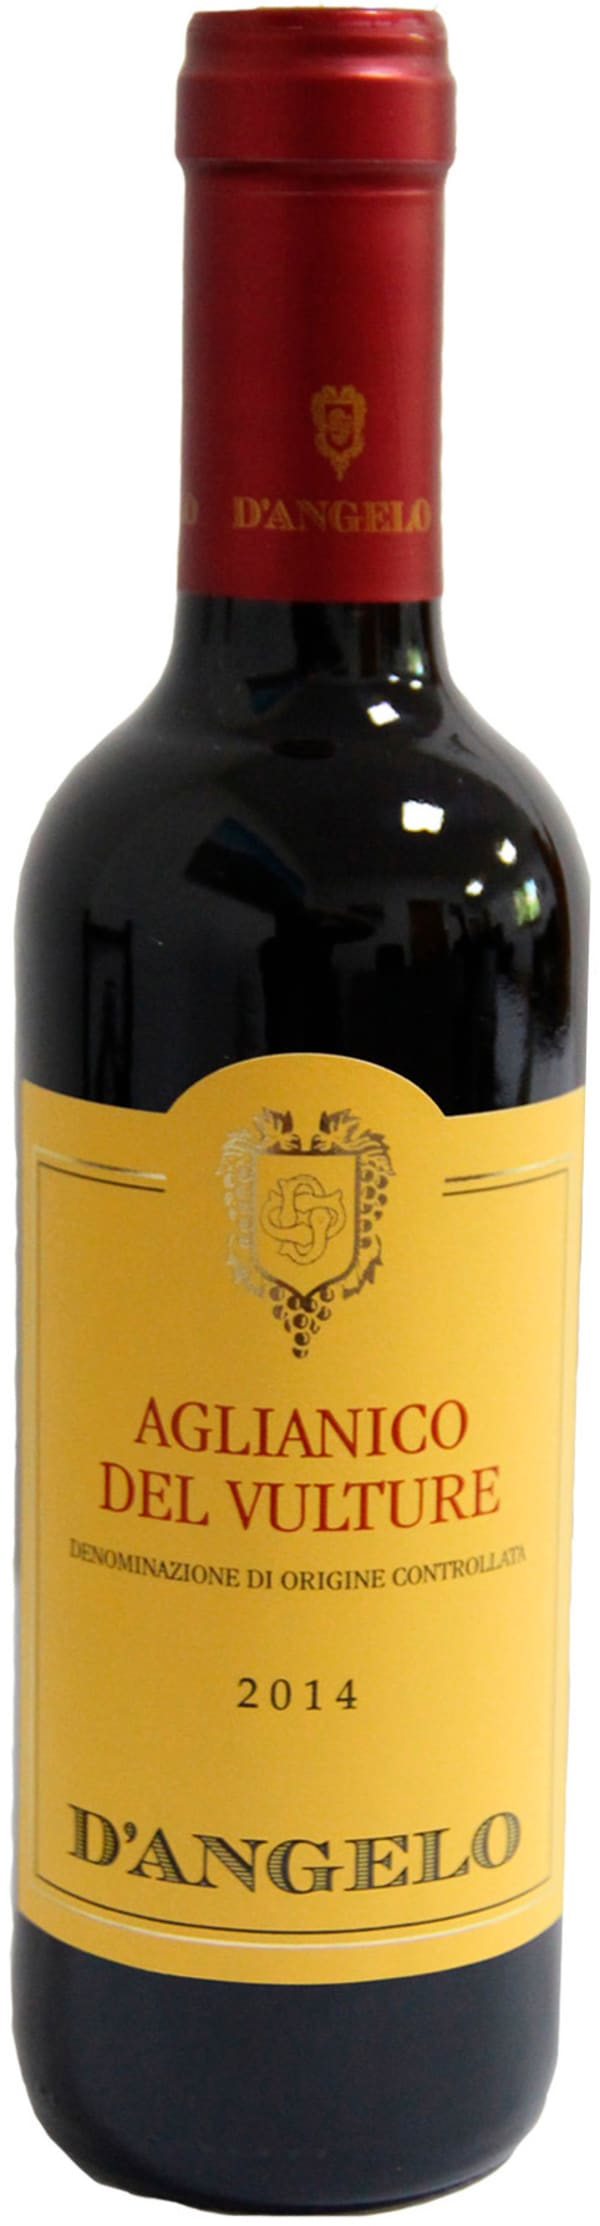 D'Angelo Aglianico del Vulture 2014